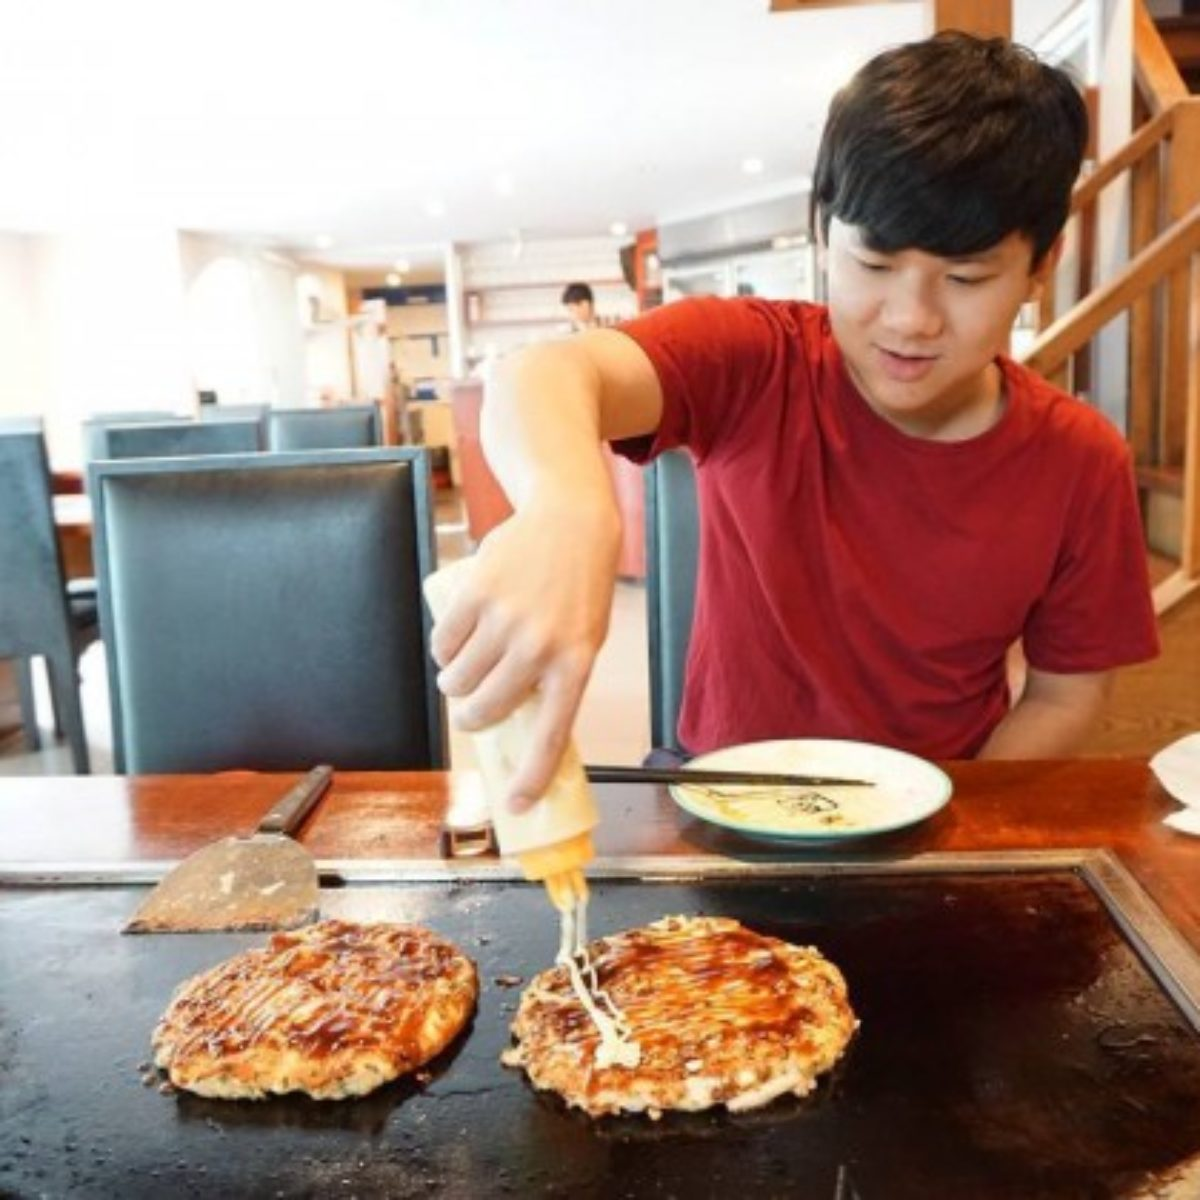 10 Diy Restaurants In Singapore To Cook Your Own Food Without Having To Clean Up